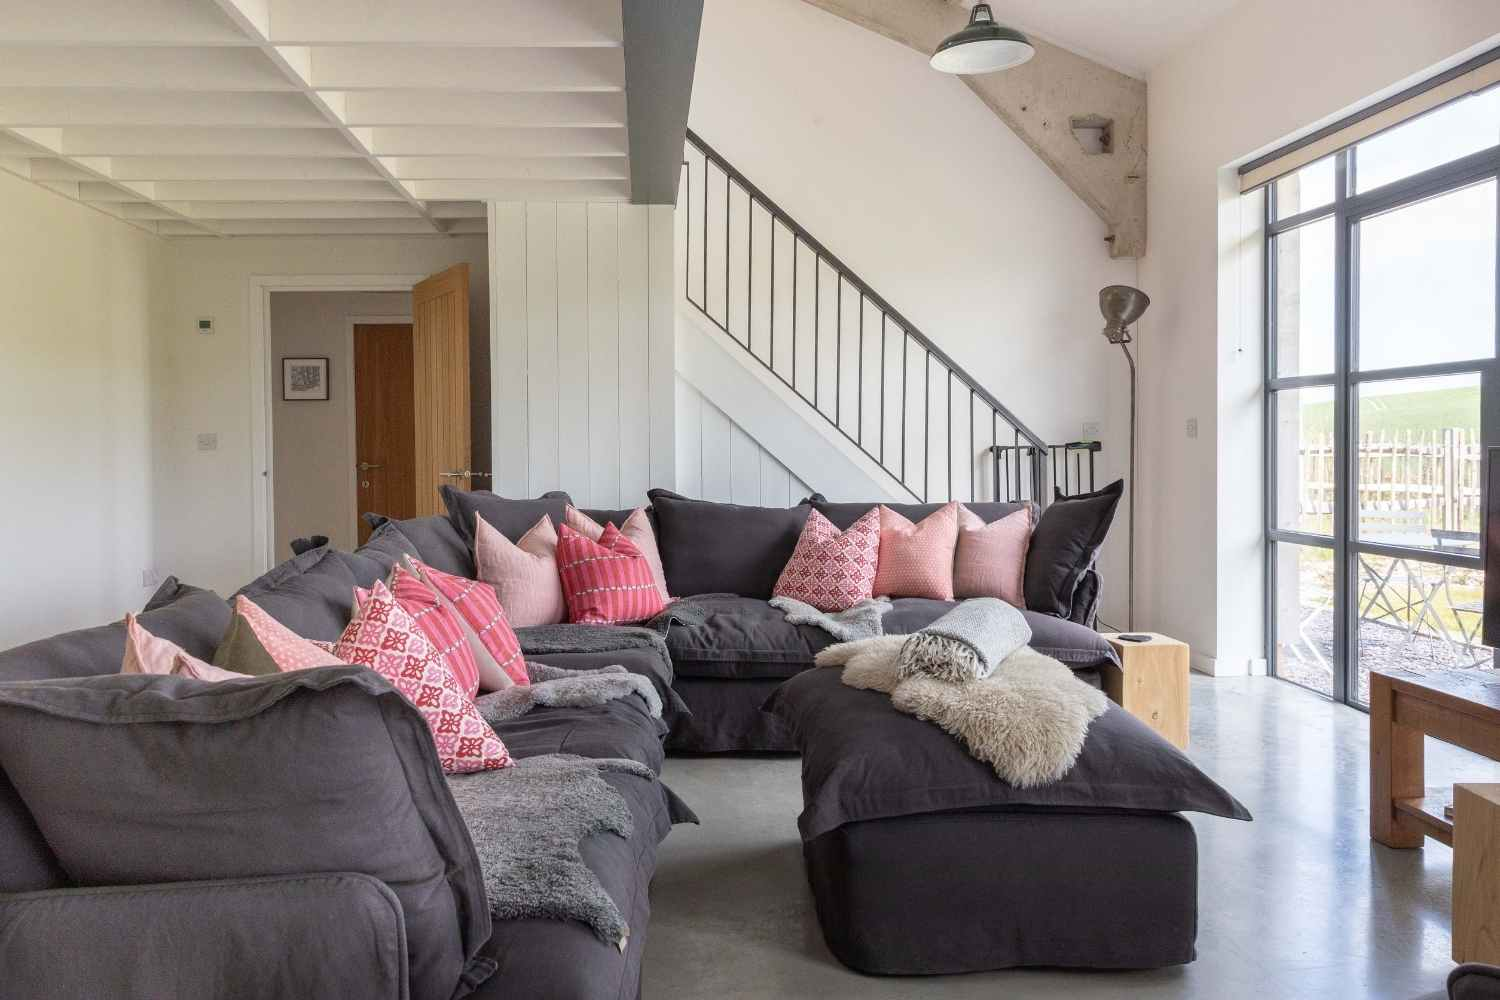 Stylish and cosy sitting room